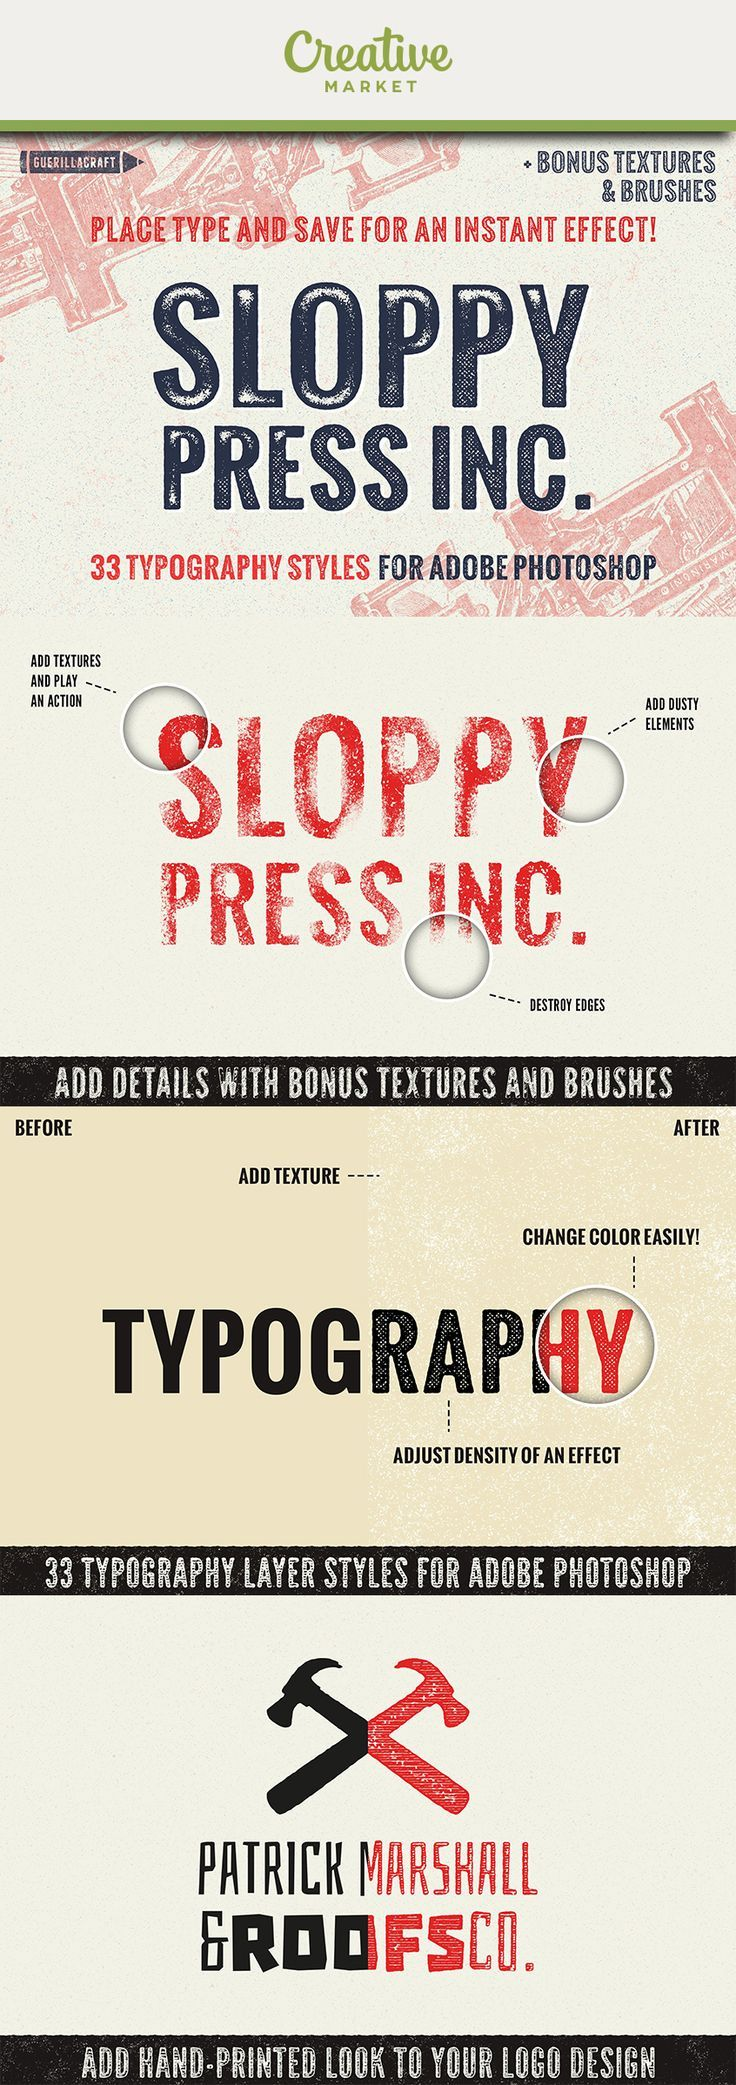 Ad: Sloppy Press INC. contains 33 typographic layer styles for Adobe Photoshop, textures, brushes and actions to make hand-printed typography effects instantly! If you need some nice hand-printed typography /or simple an one colour logo/ effect, look at t